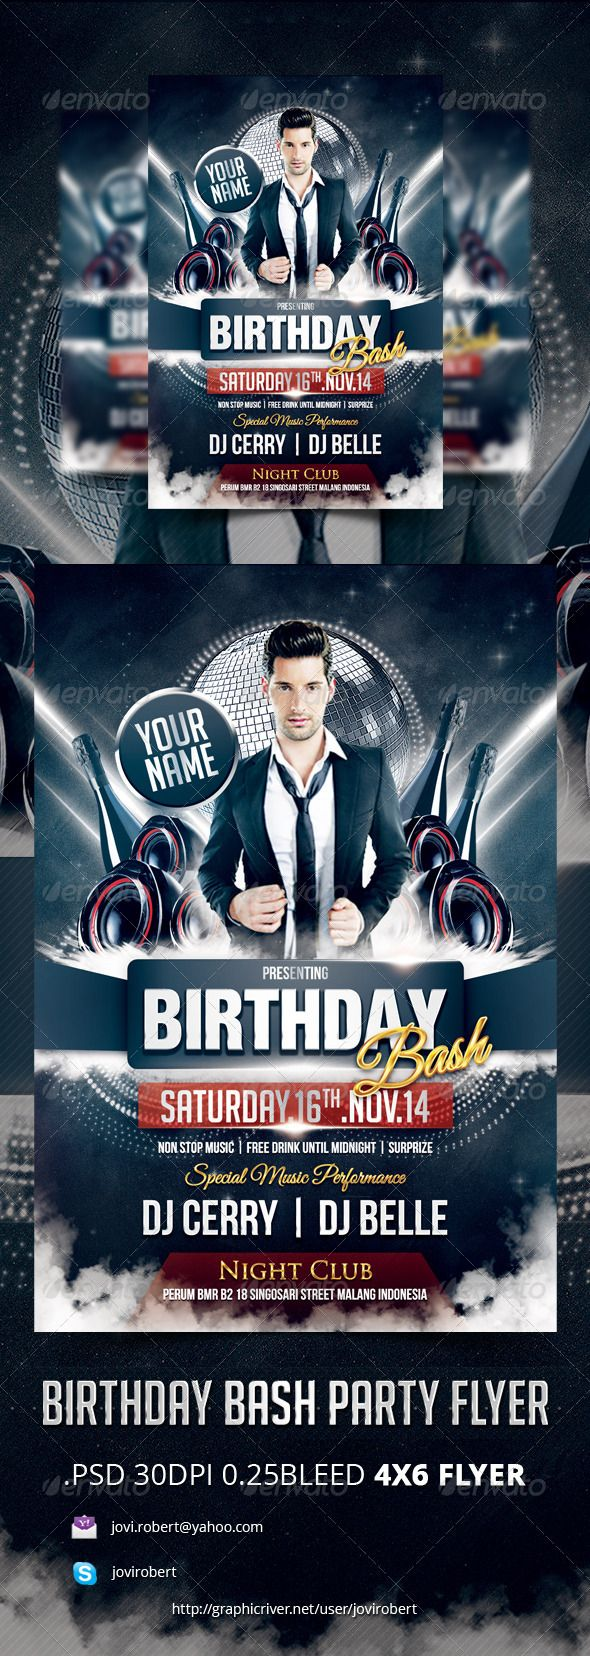 Birthday Bash Party Flyer | Party flyer, Birthday bash and Men party